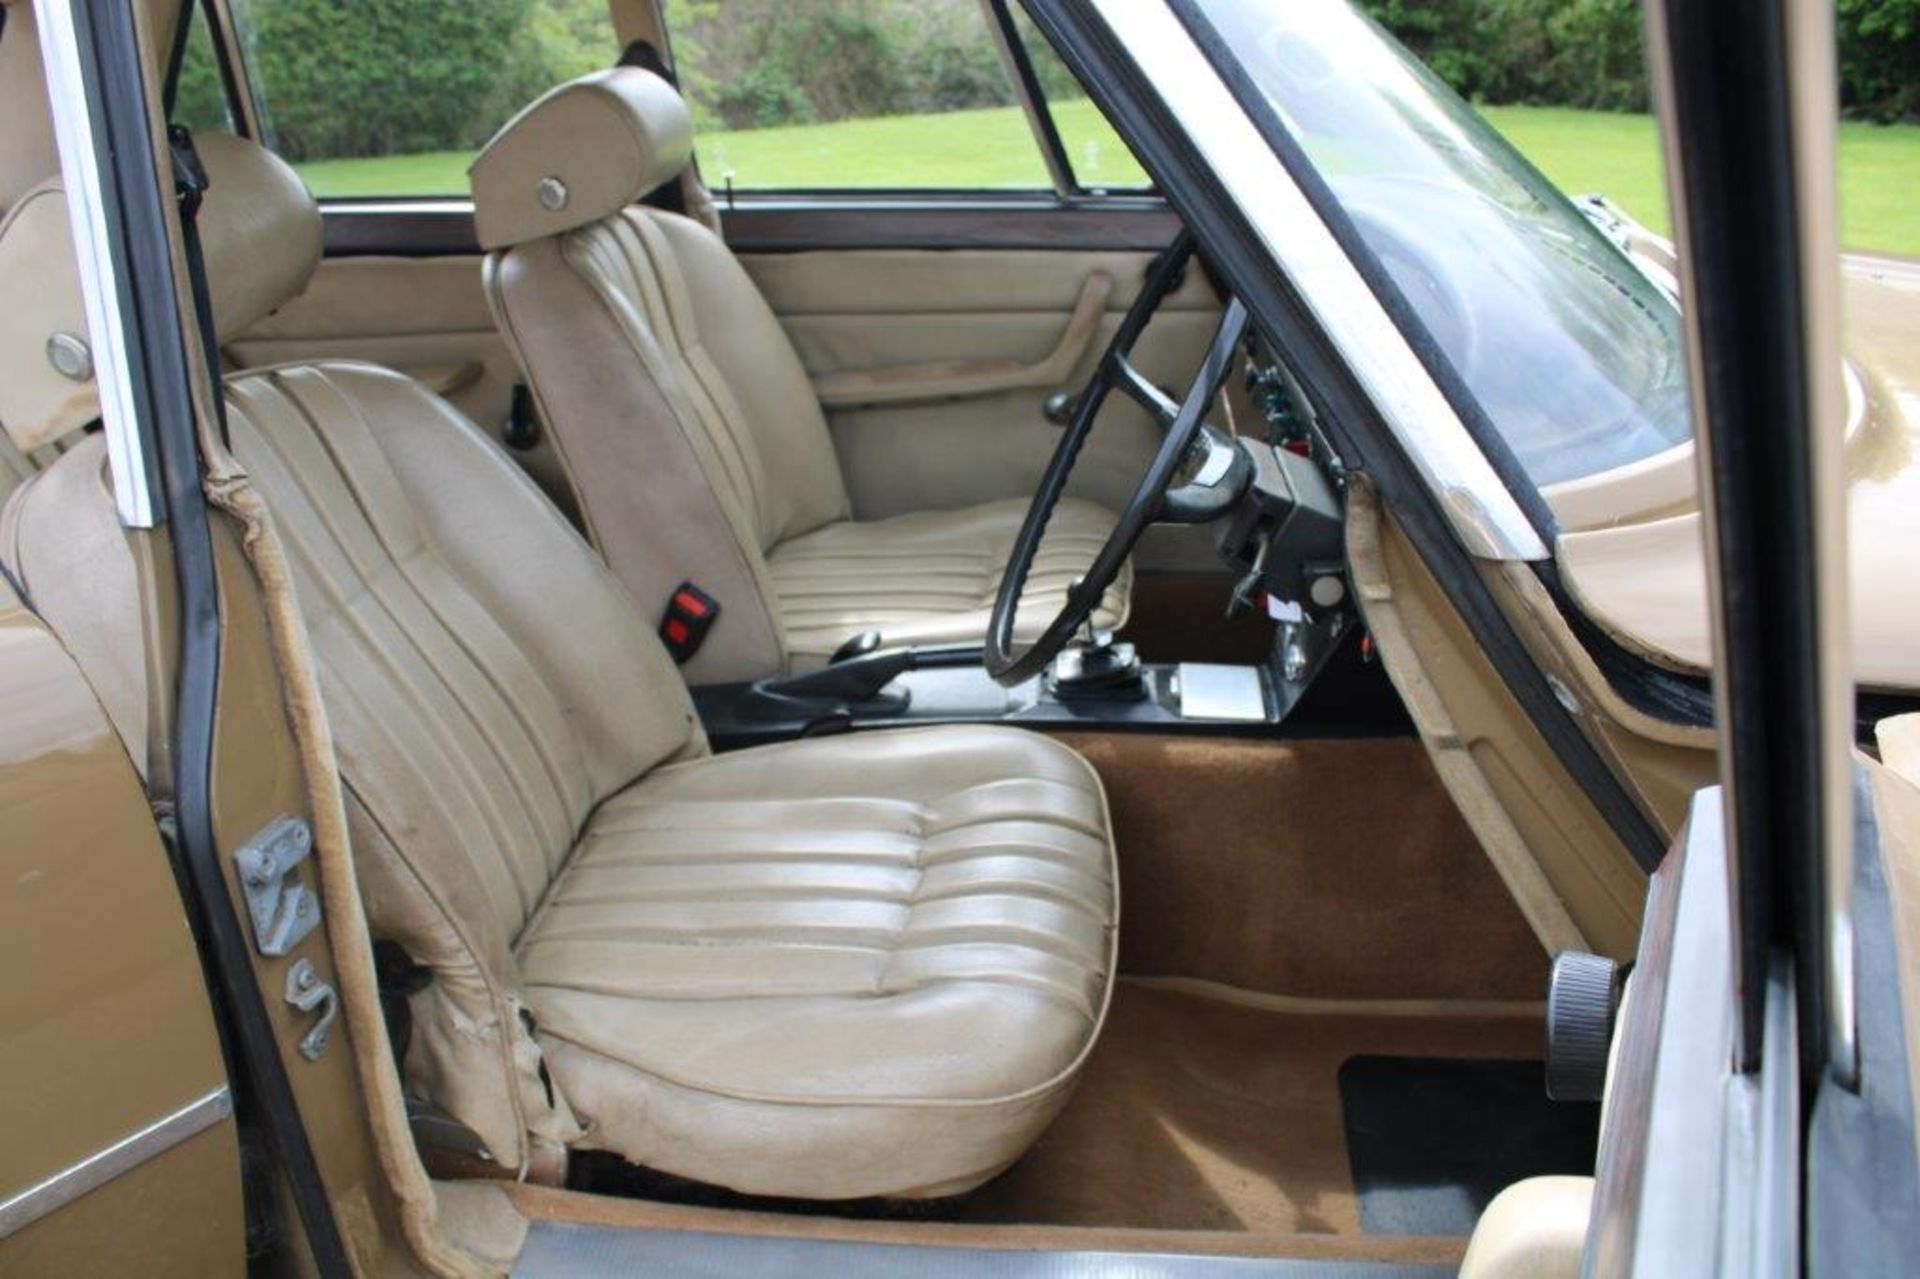 1970 Rover P6 3500 S 1 of 6 development cars - Image 16 of 21